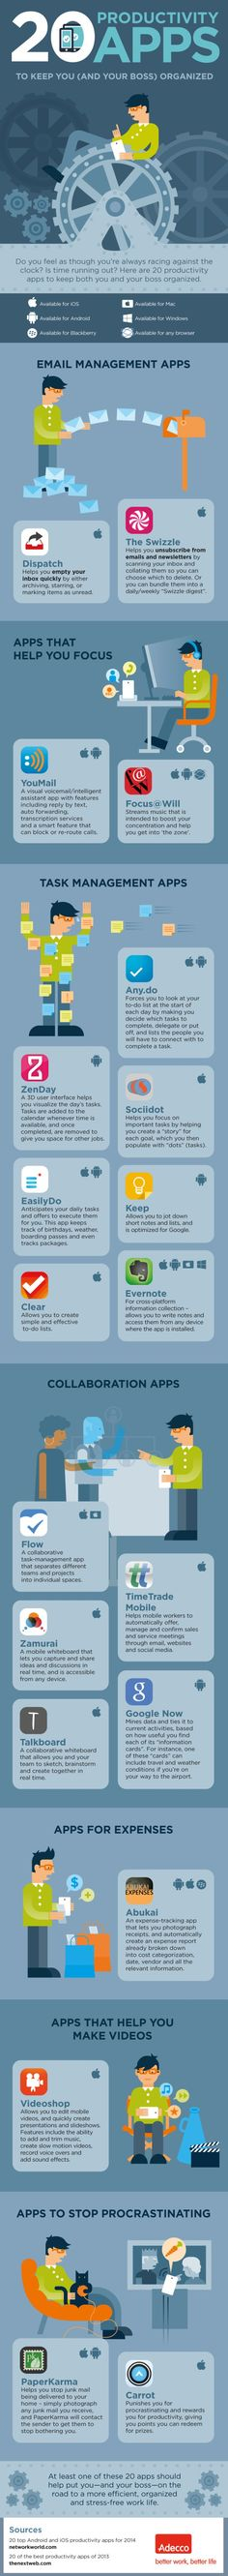 Technology to aid productivity  In this technologically advanced age, it would be amiss to not mention apps that can help boost our productivity.  The infographic below shares 20 apps that help you re